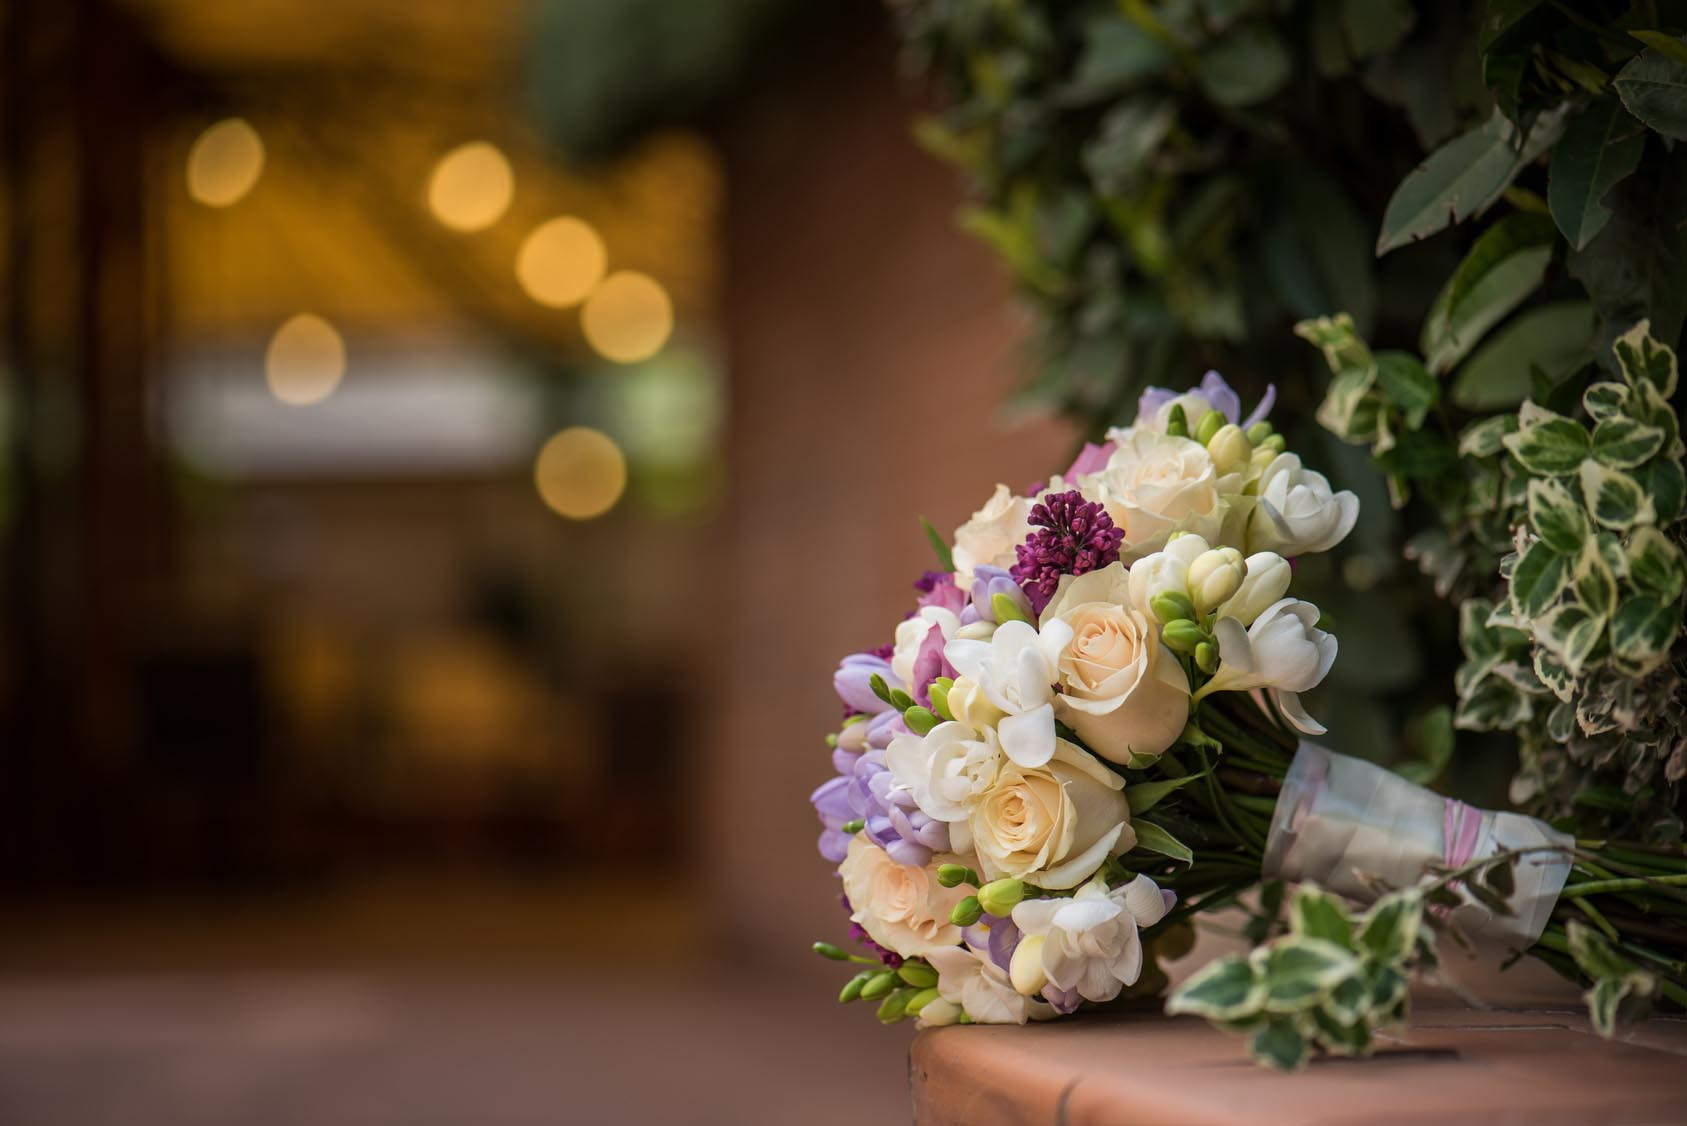 Flower Delivery And Plant Arrangement Services Of